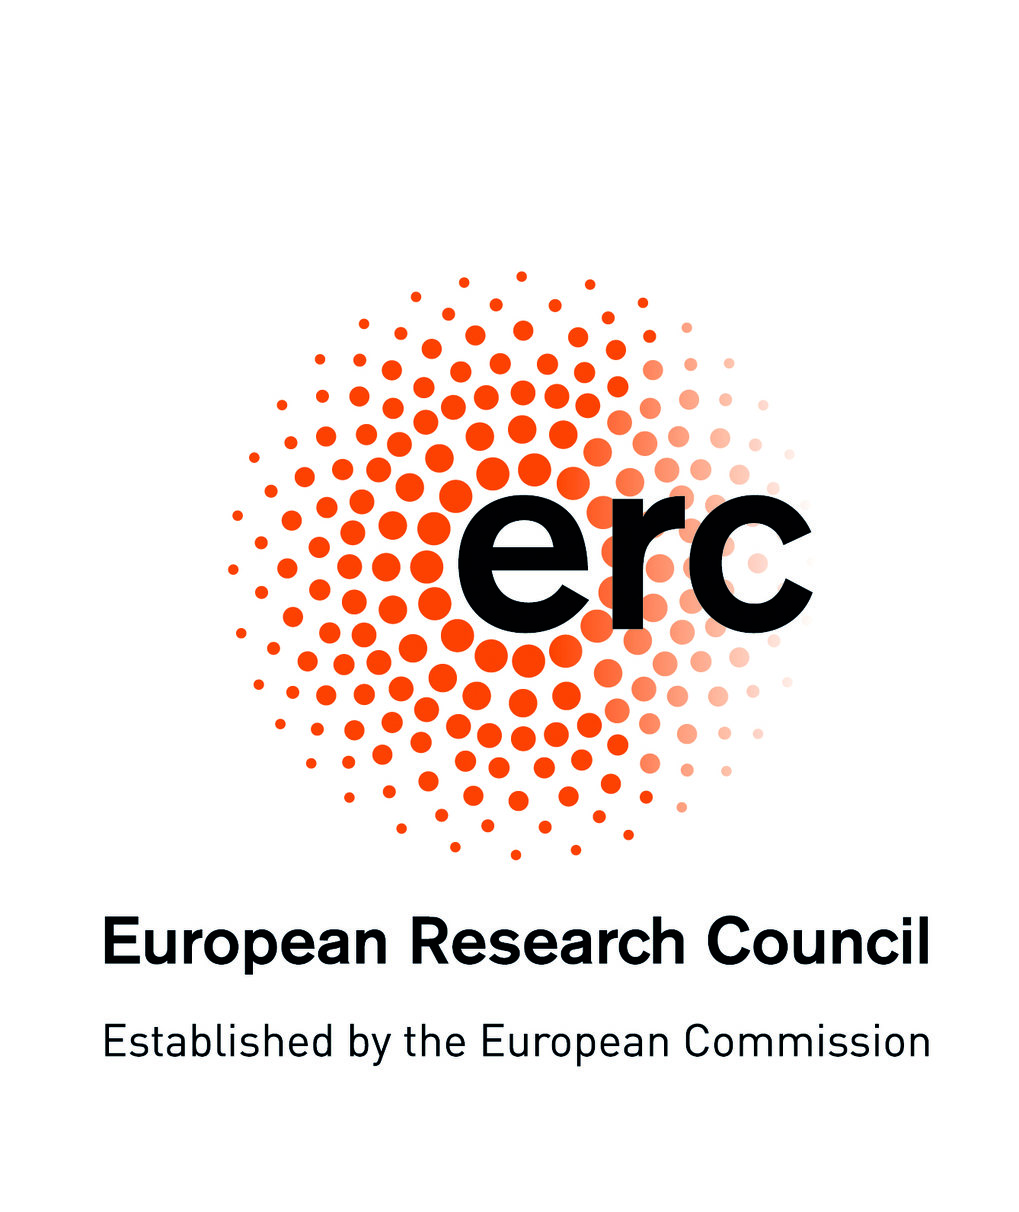 ERC funded Starting Grant under the framework of the EU's Horizon 2020 Programme granted in 2014 to Dr. B. Grabowski.